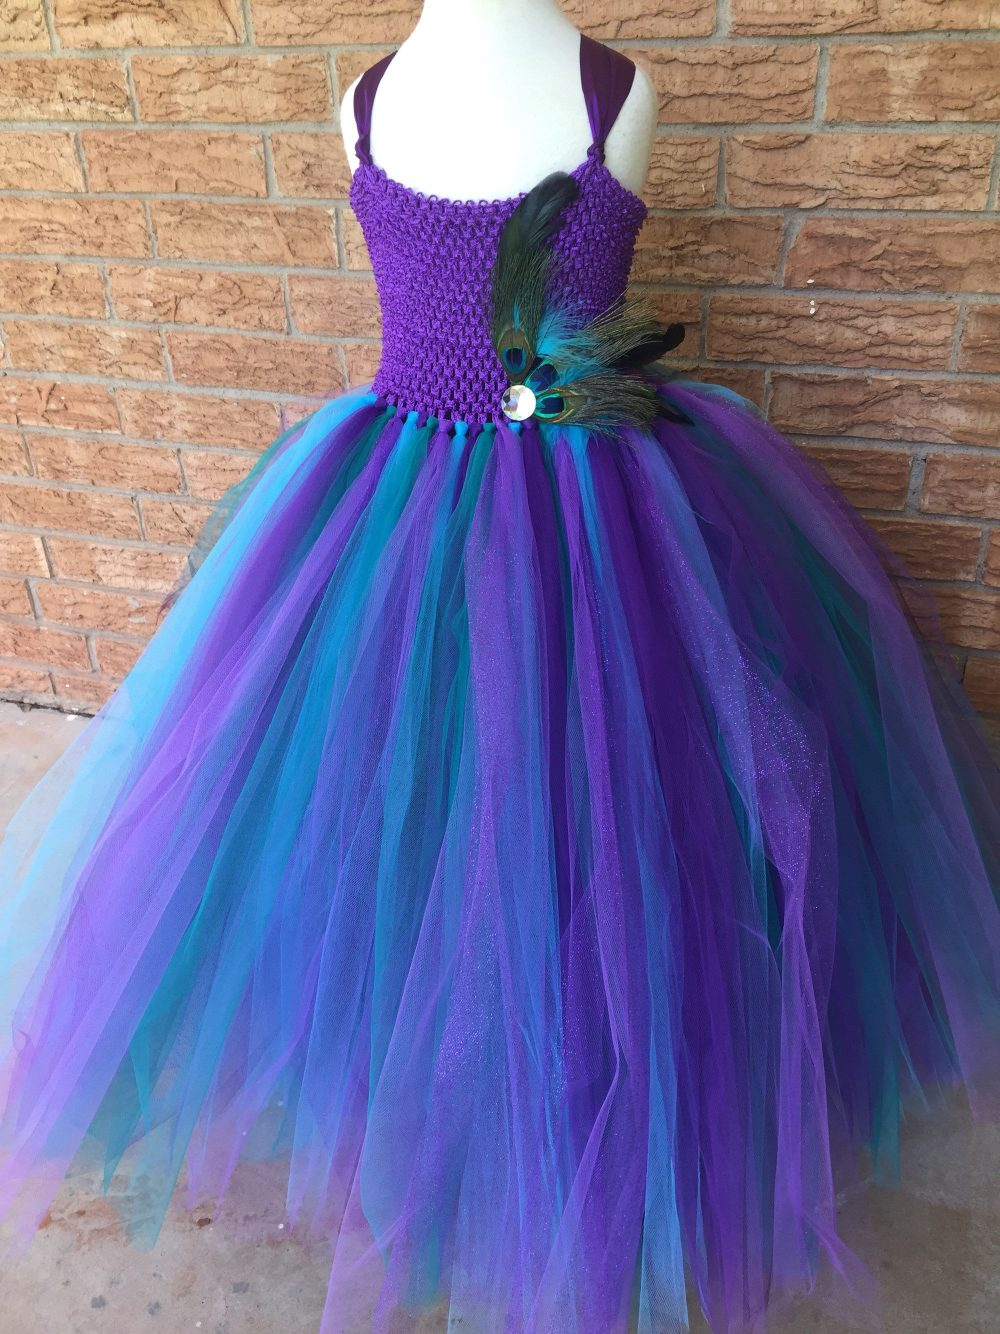 Purple Plum Peacock Wedding, Flower Girl Dress, Teal Tutu Tulle Peacock Theme